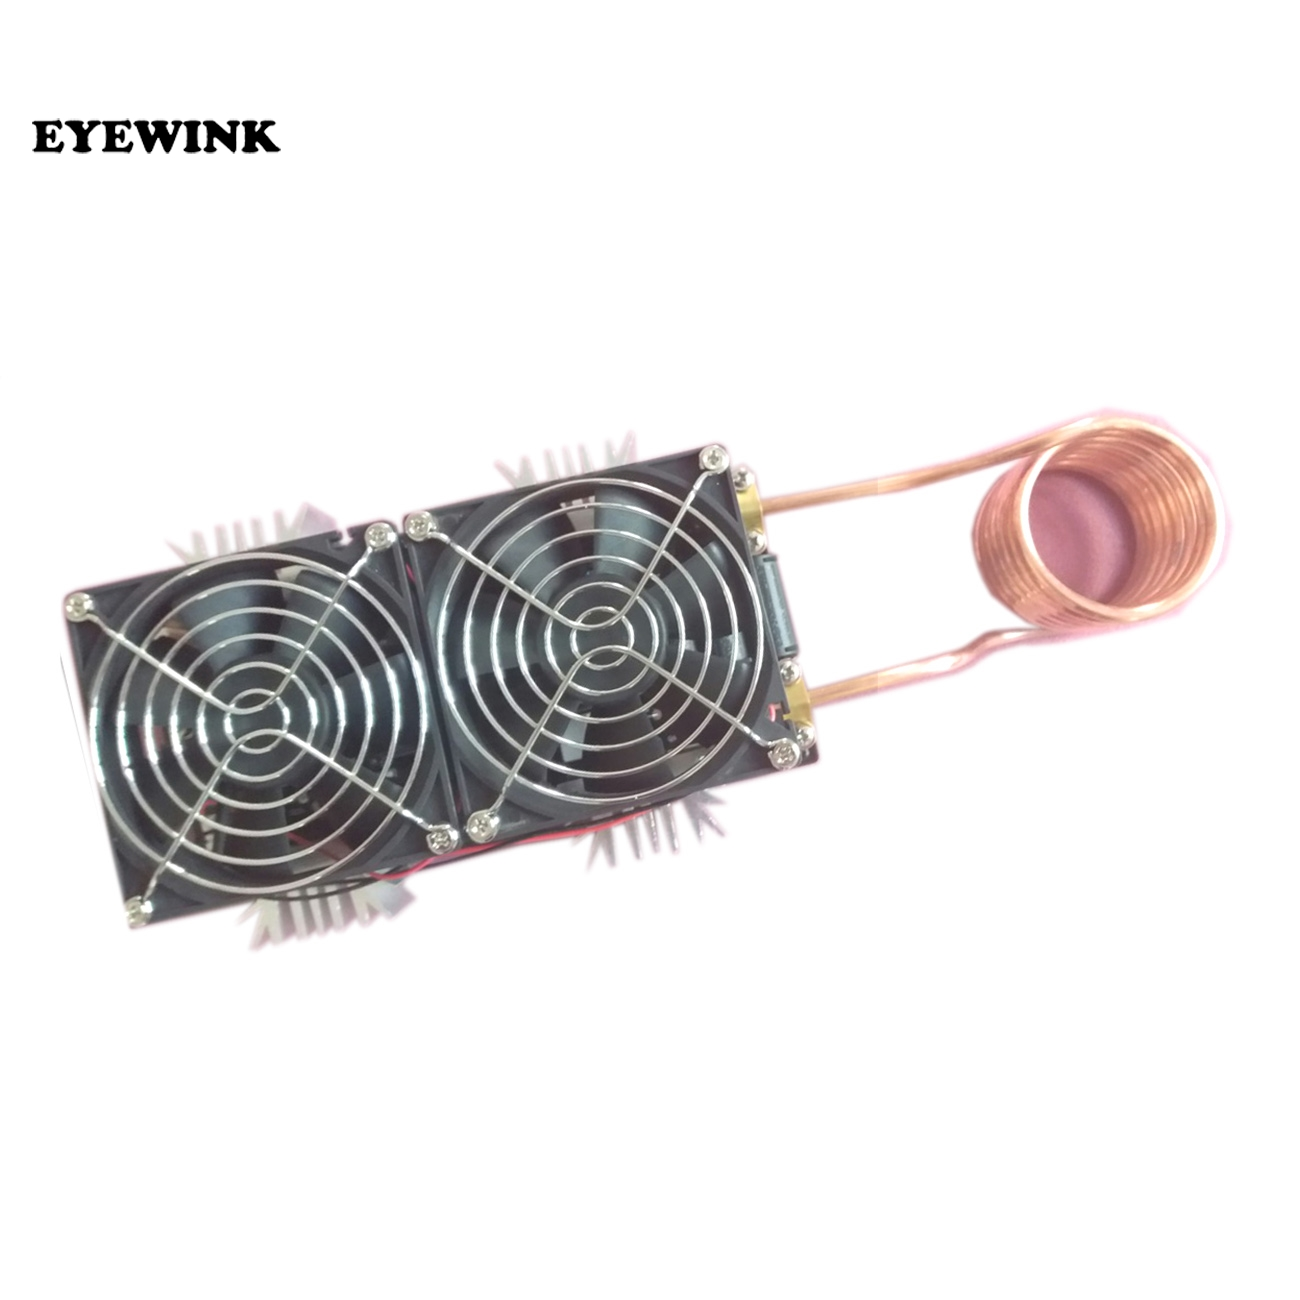 4 Tube ZVS High Power ZVS Low Voltage Induction Heating High Frequency Heating Quenching 2000W heating